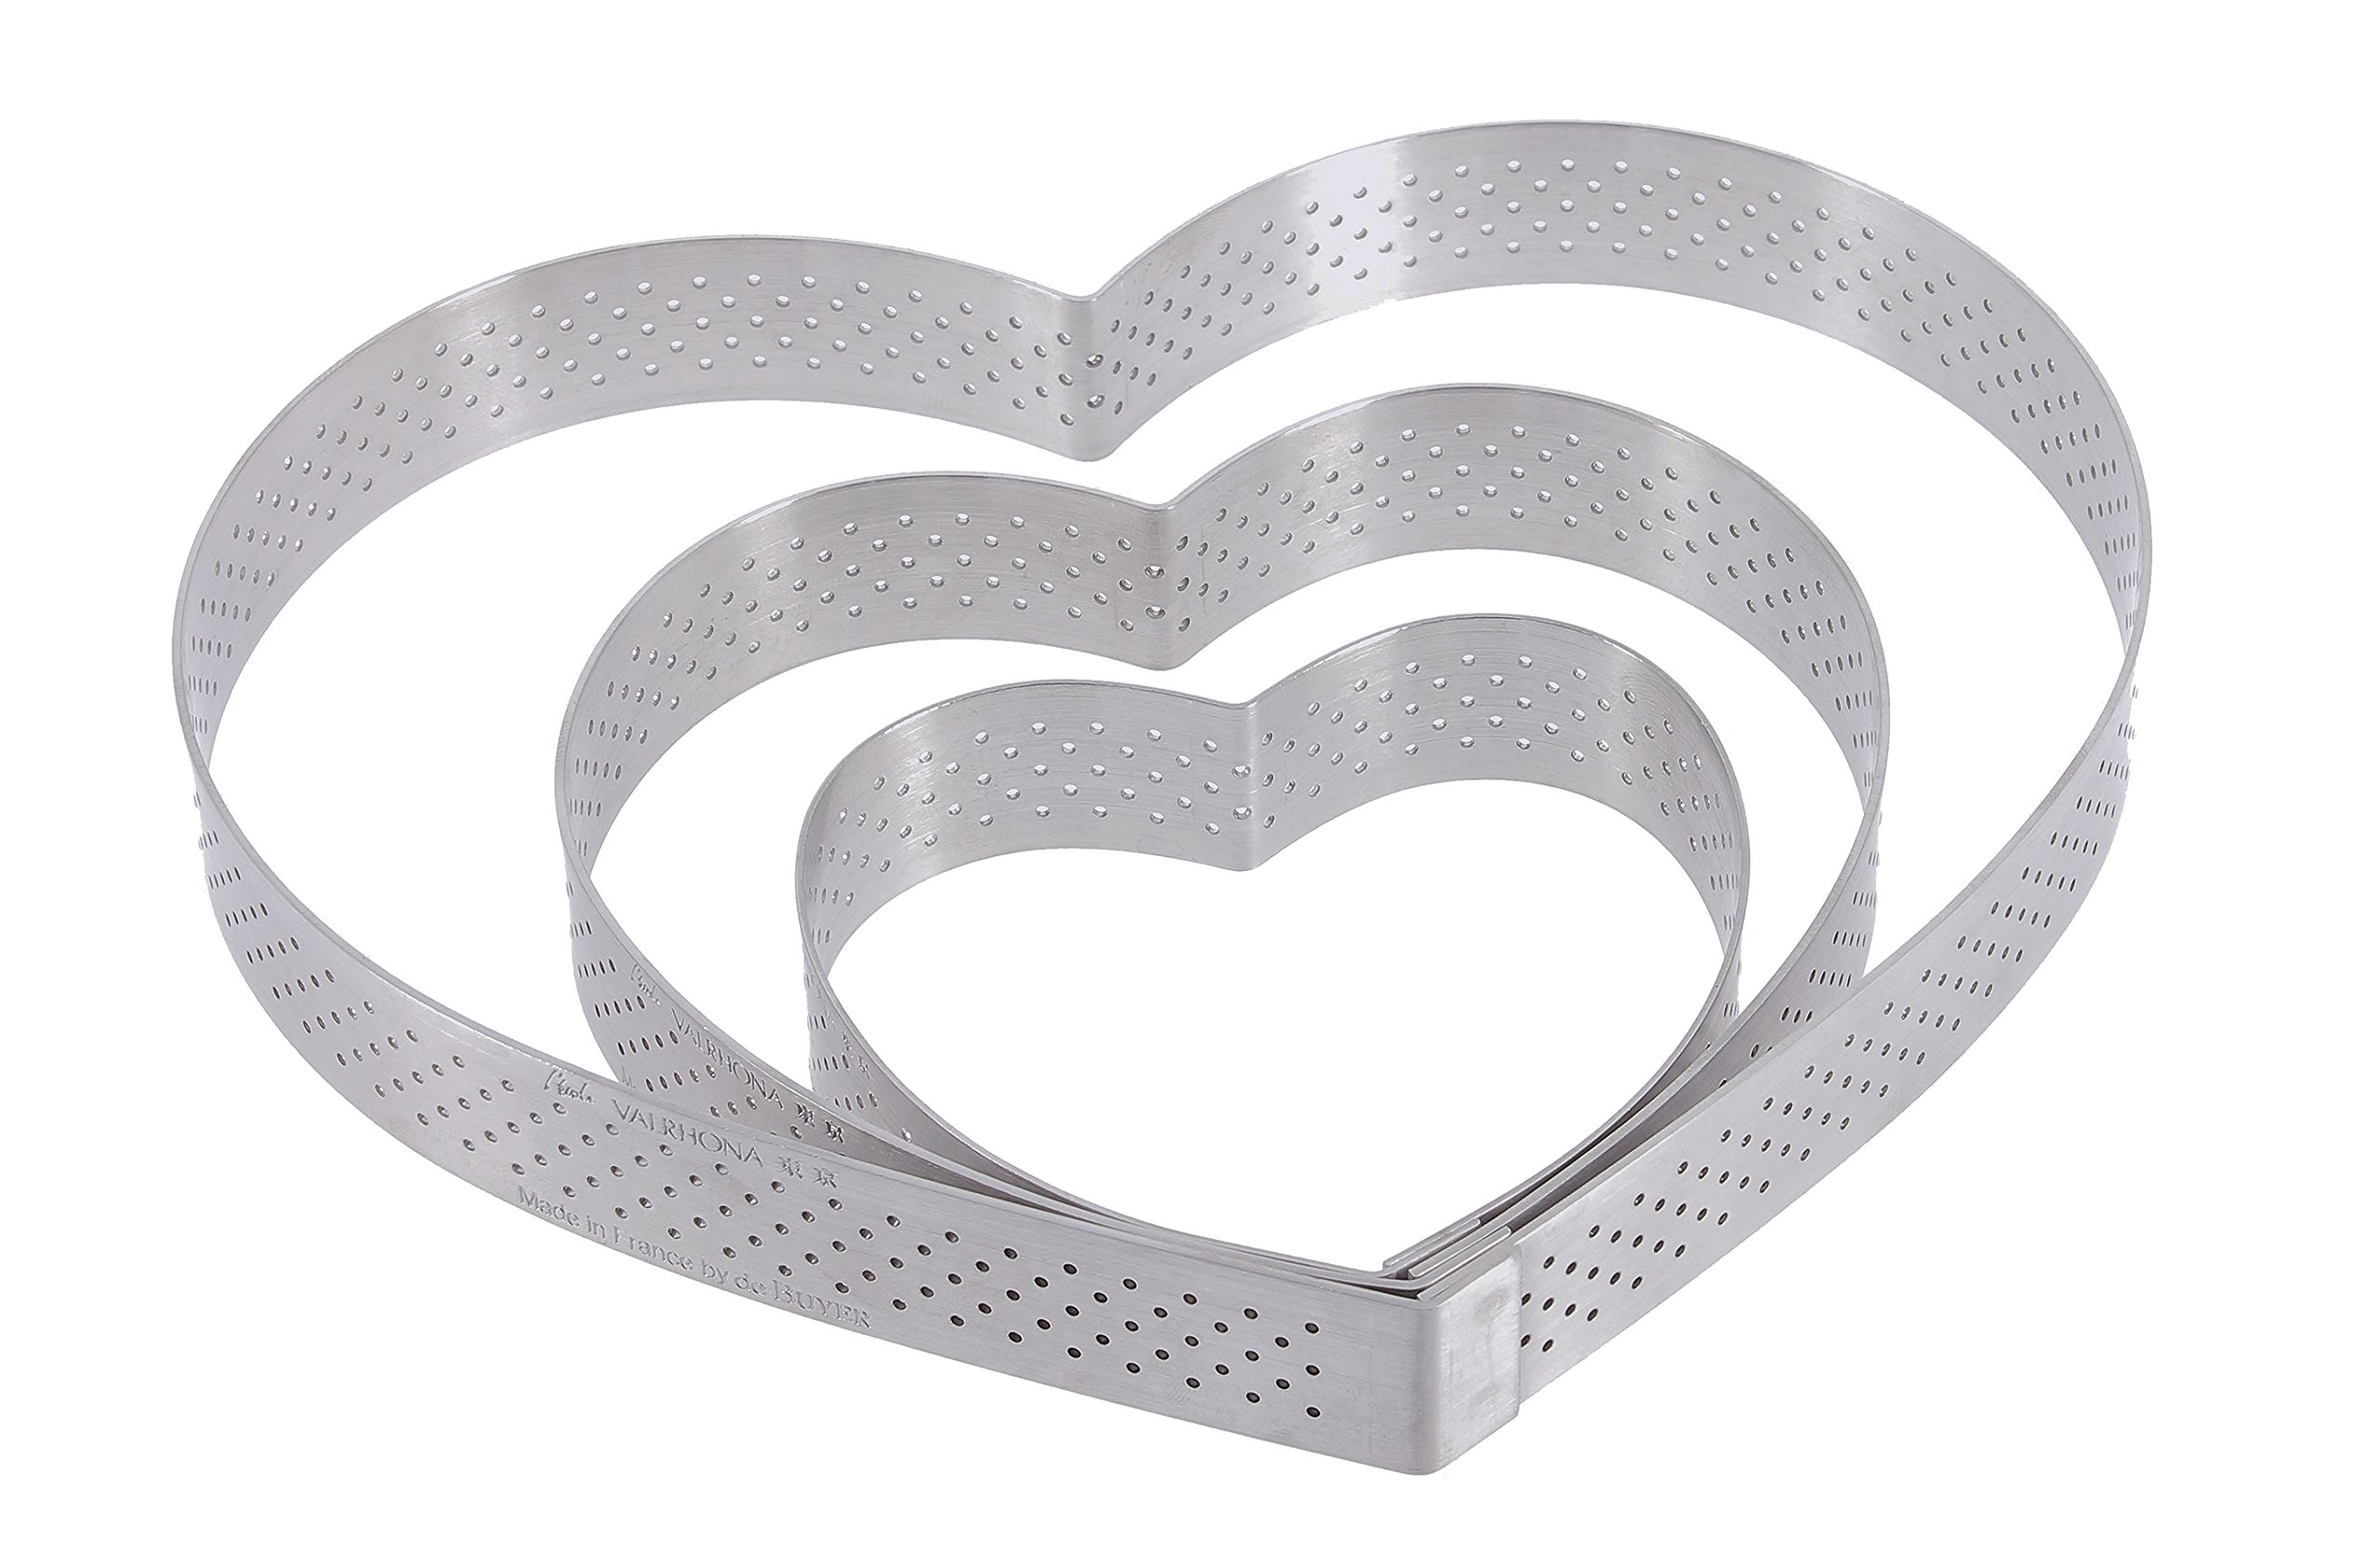 PERFORATED TART RING, Heart, in Stainless Steel, 0.75-Inch high O 7-Inch